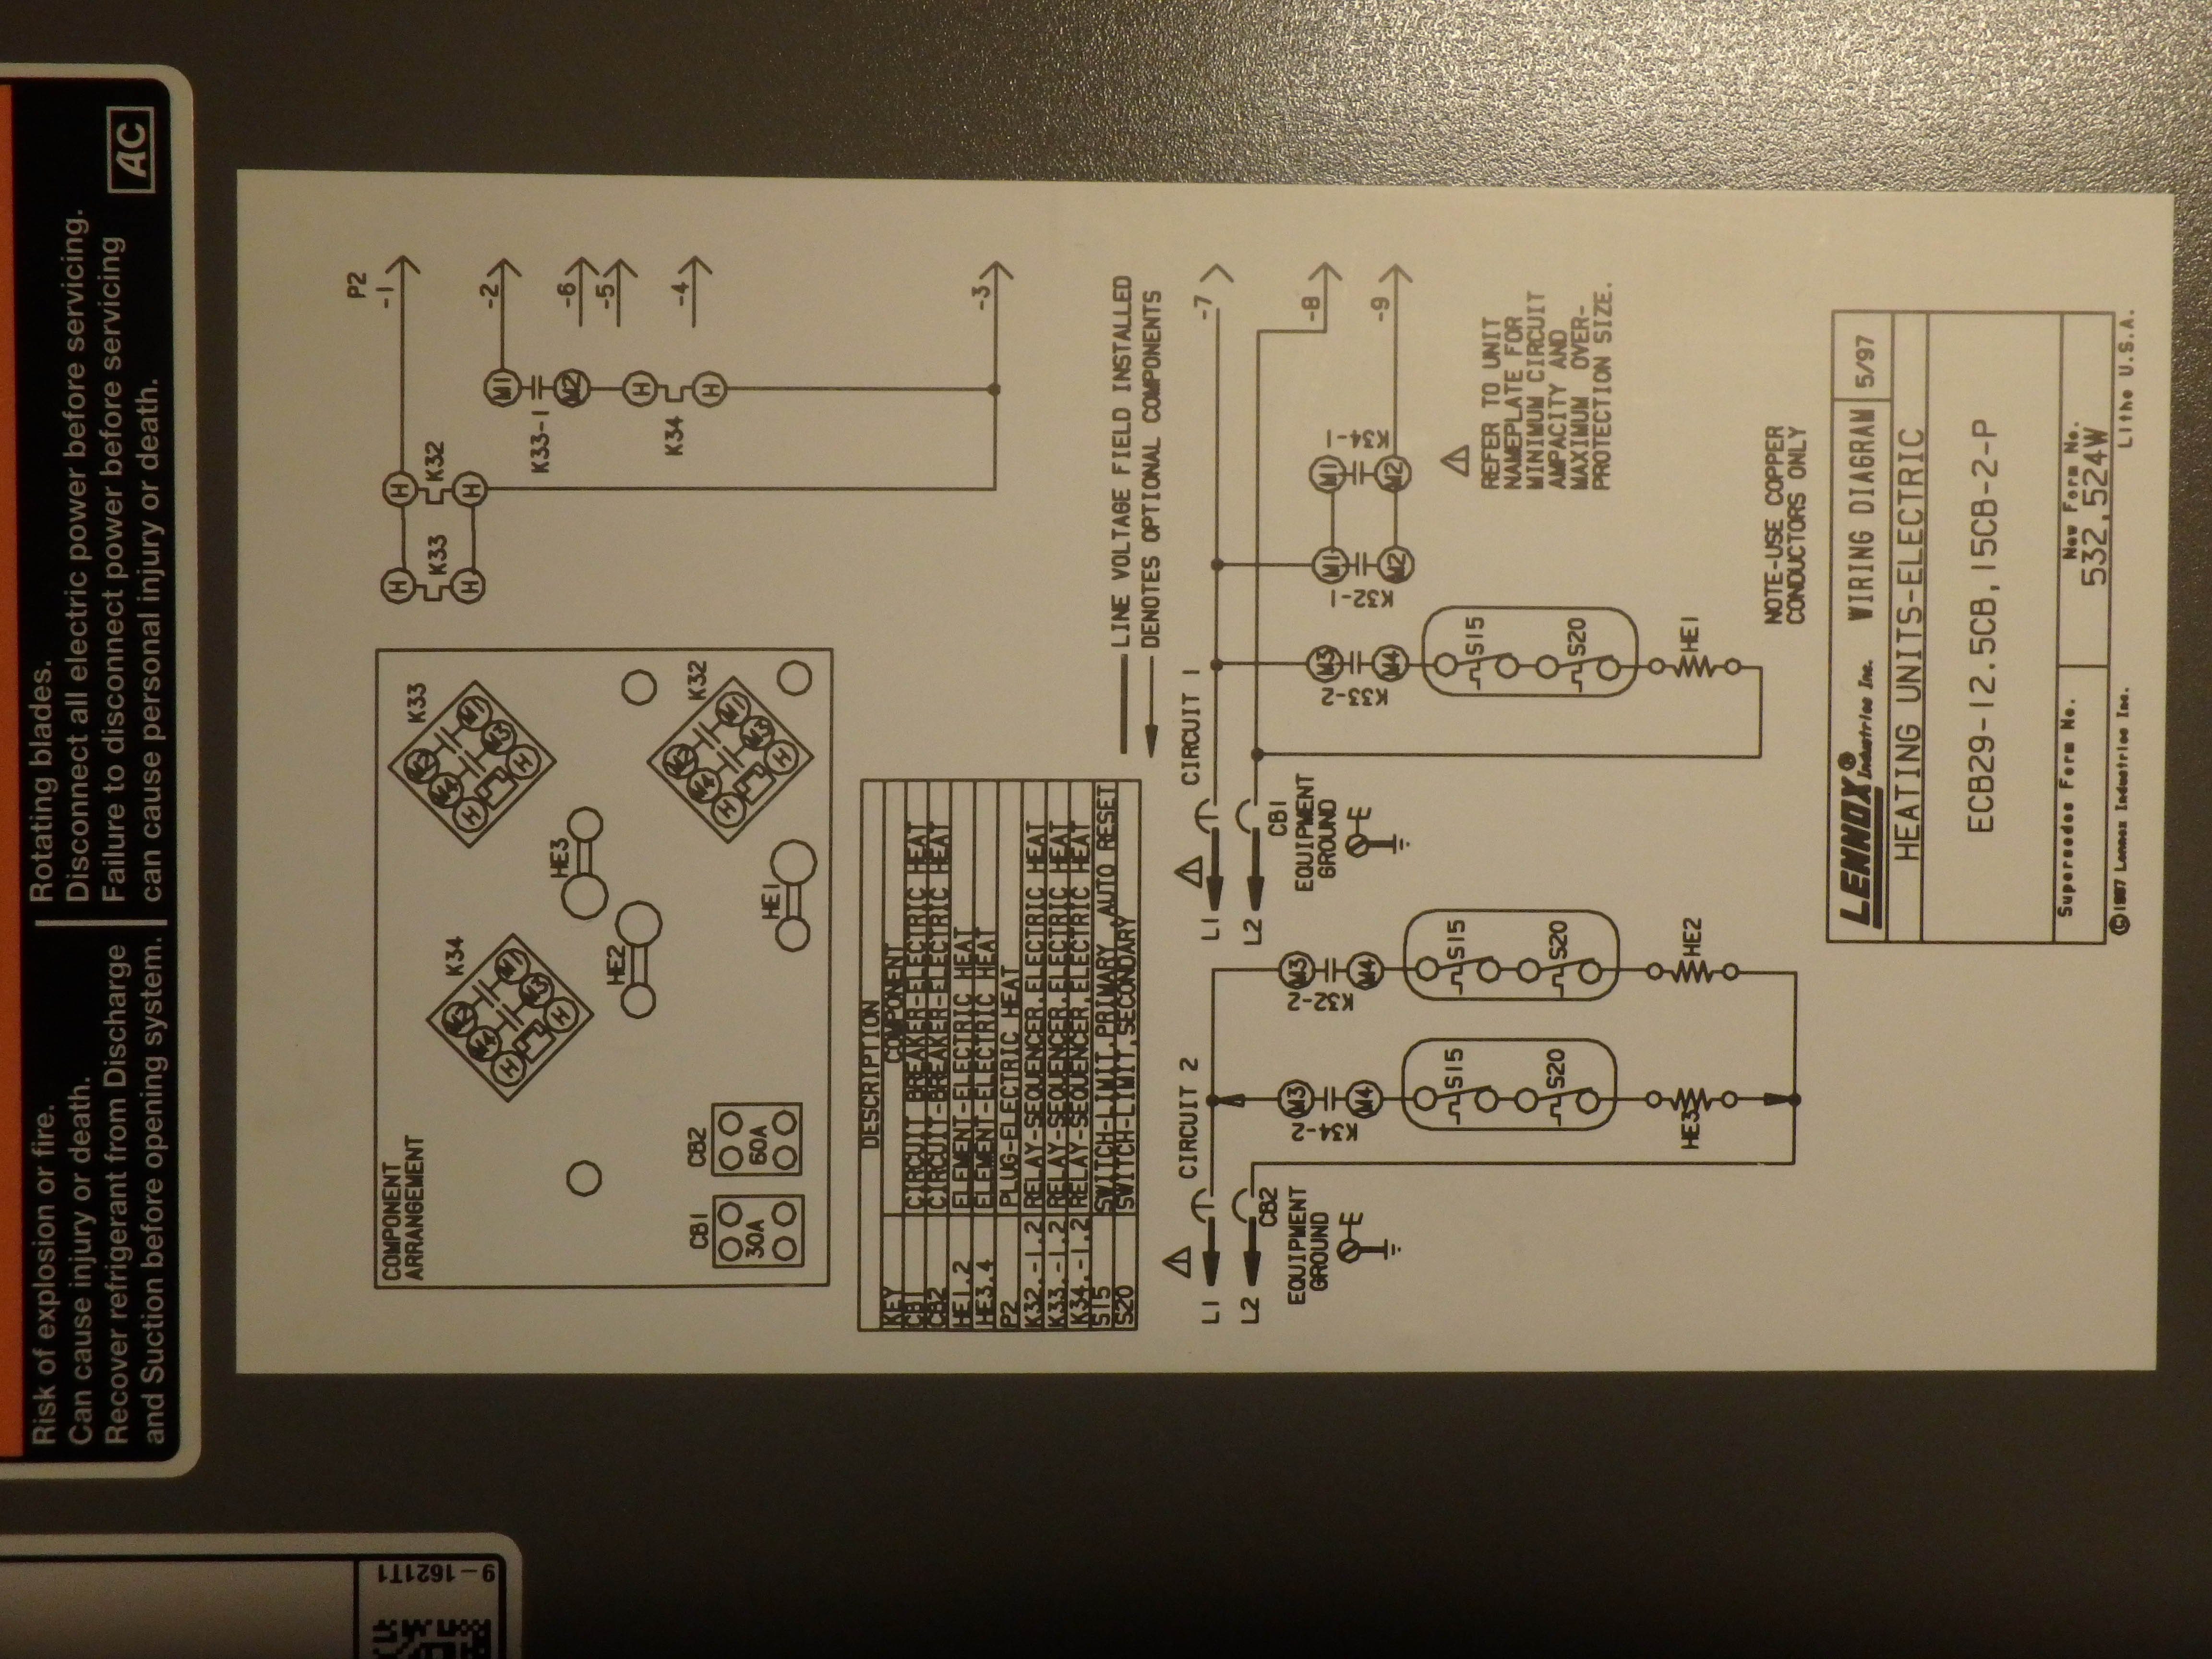 80uhg Lennox Furnace Wiring Diagram G14 Manual Control Board My Air Handler Keeps Blowing 3 Amp Fuses They Are Good